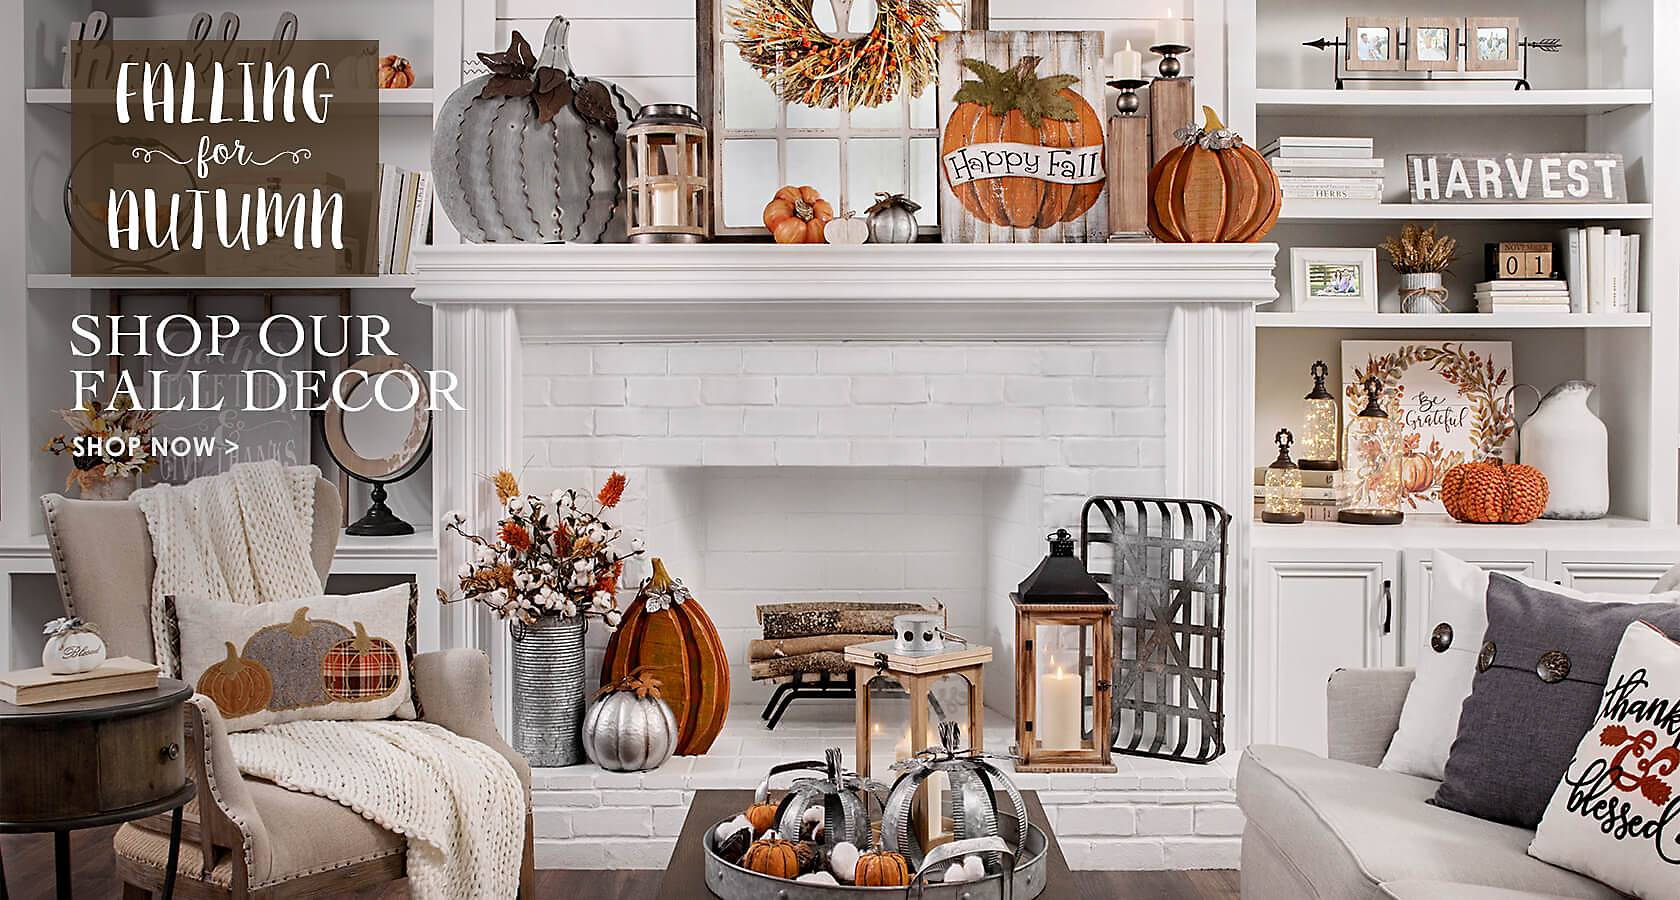 home decor wall decor furniture unique gifts kirklands falling for autumn shop our fall decor shop now